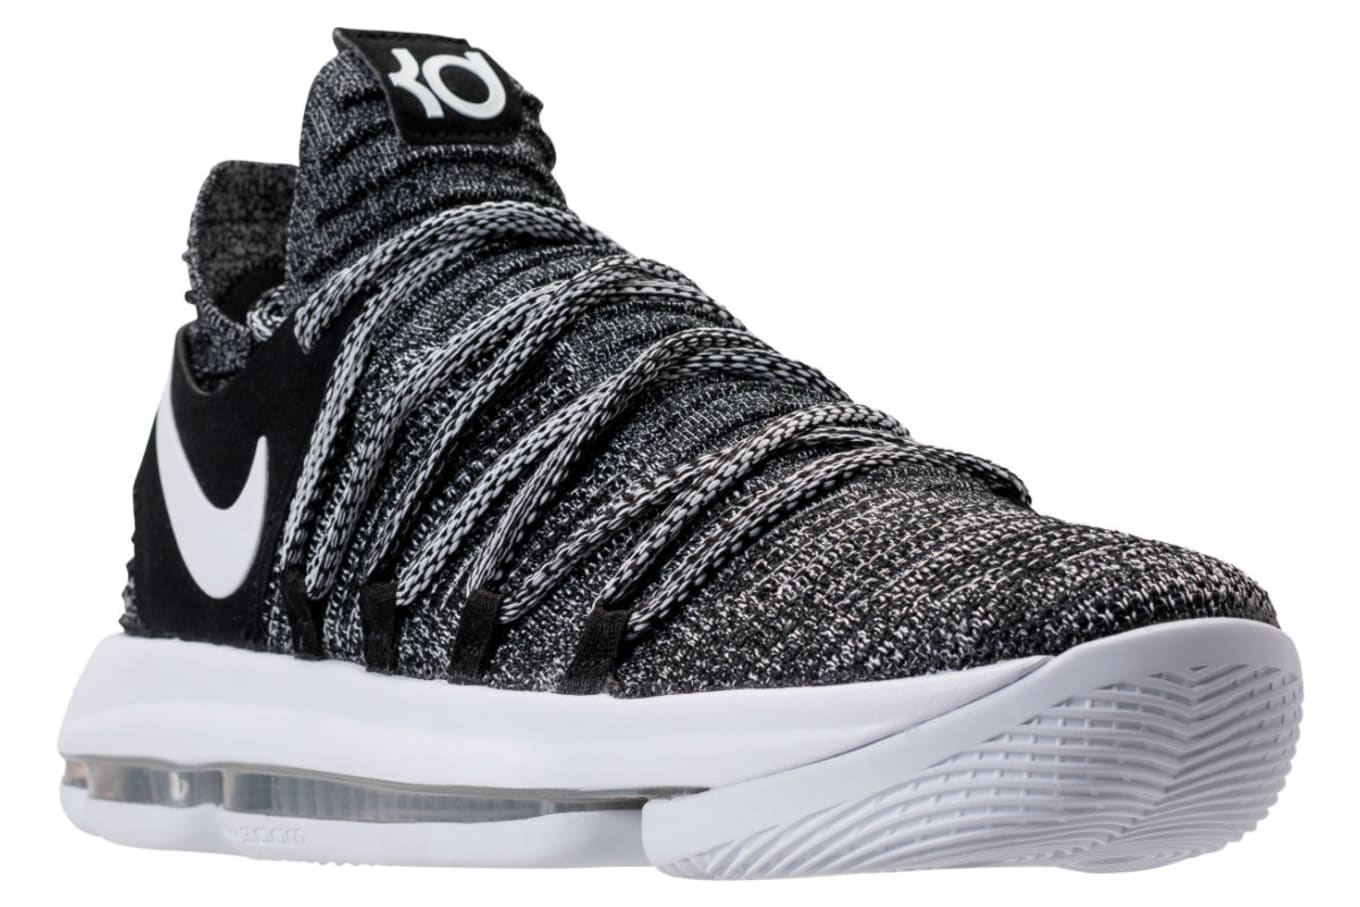 reputable site 42327 111b9 Nike KD 10 Oreo Release Date 897815-001 | Sole Collector